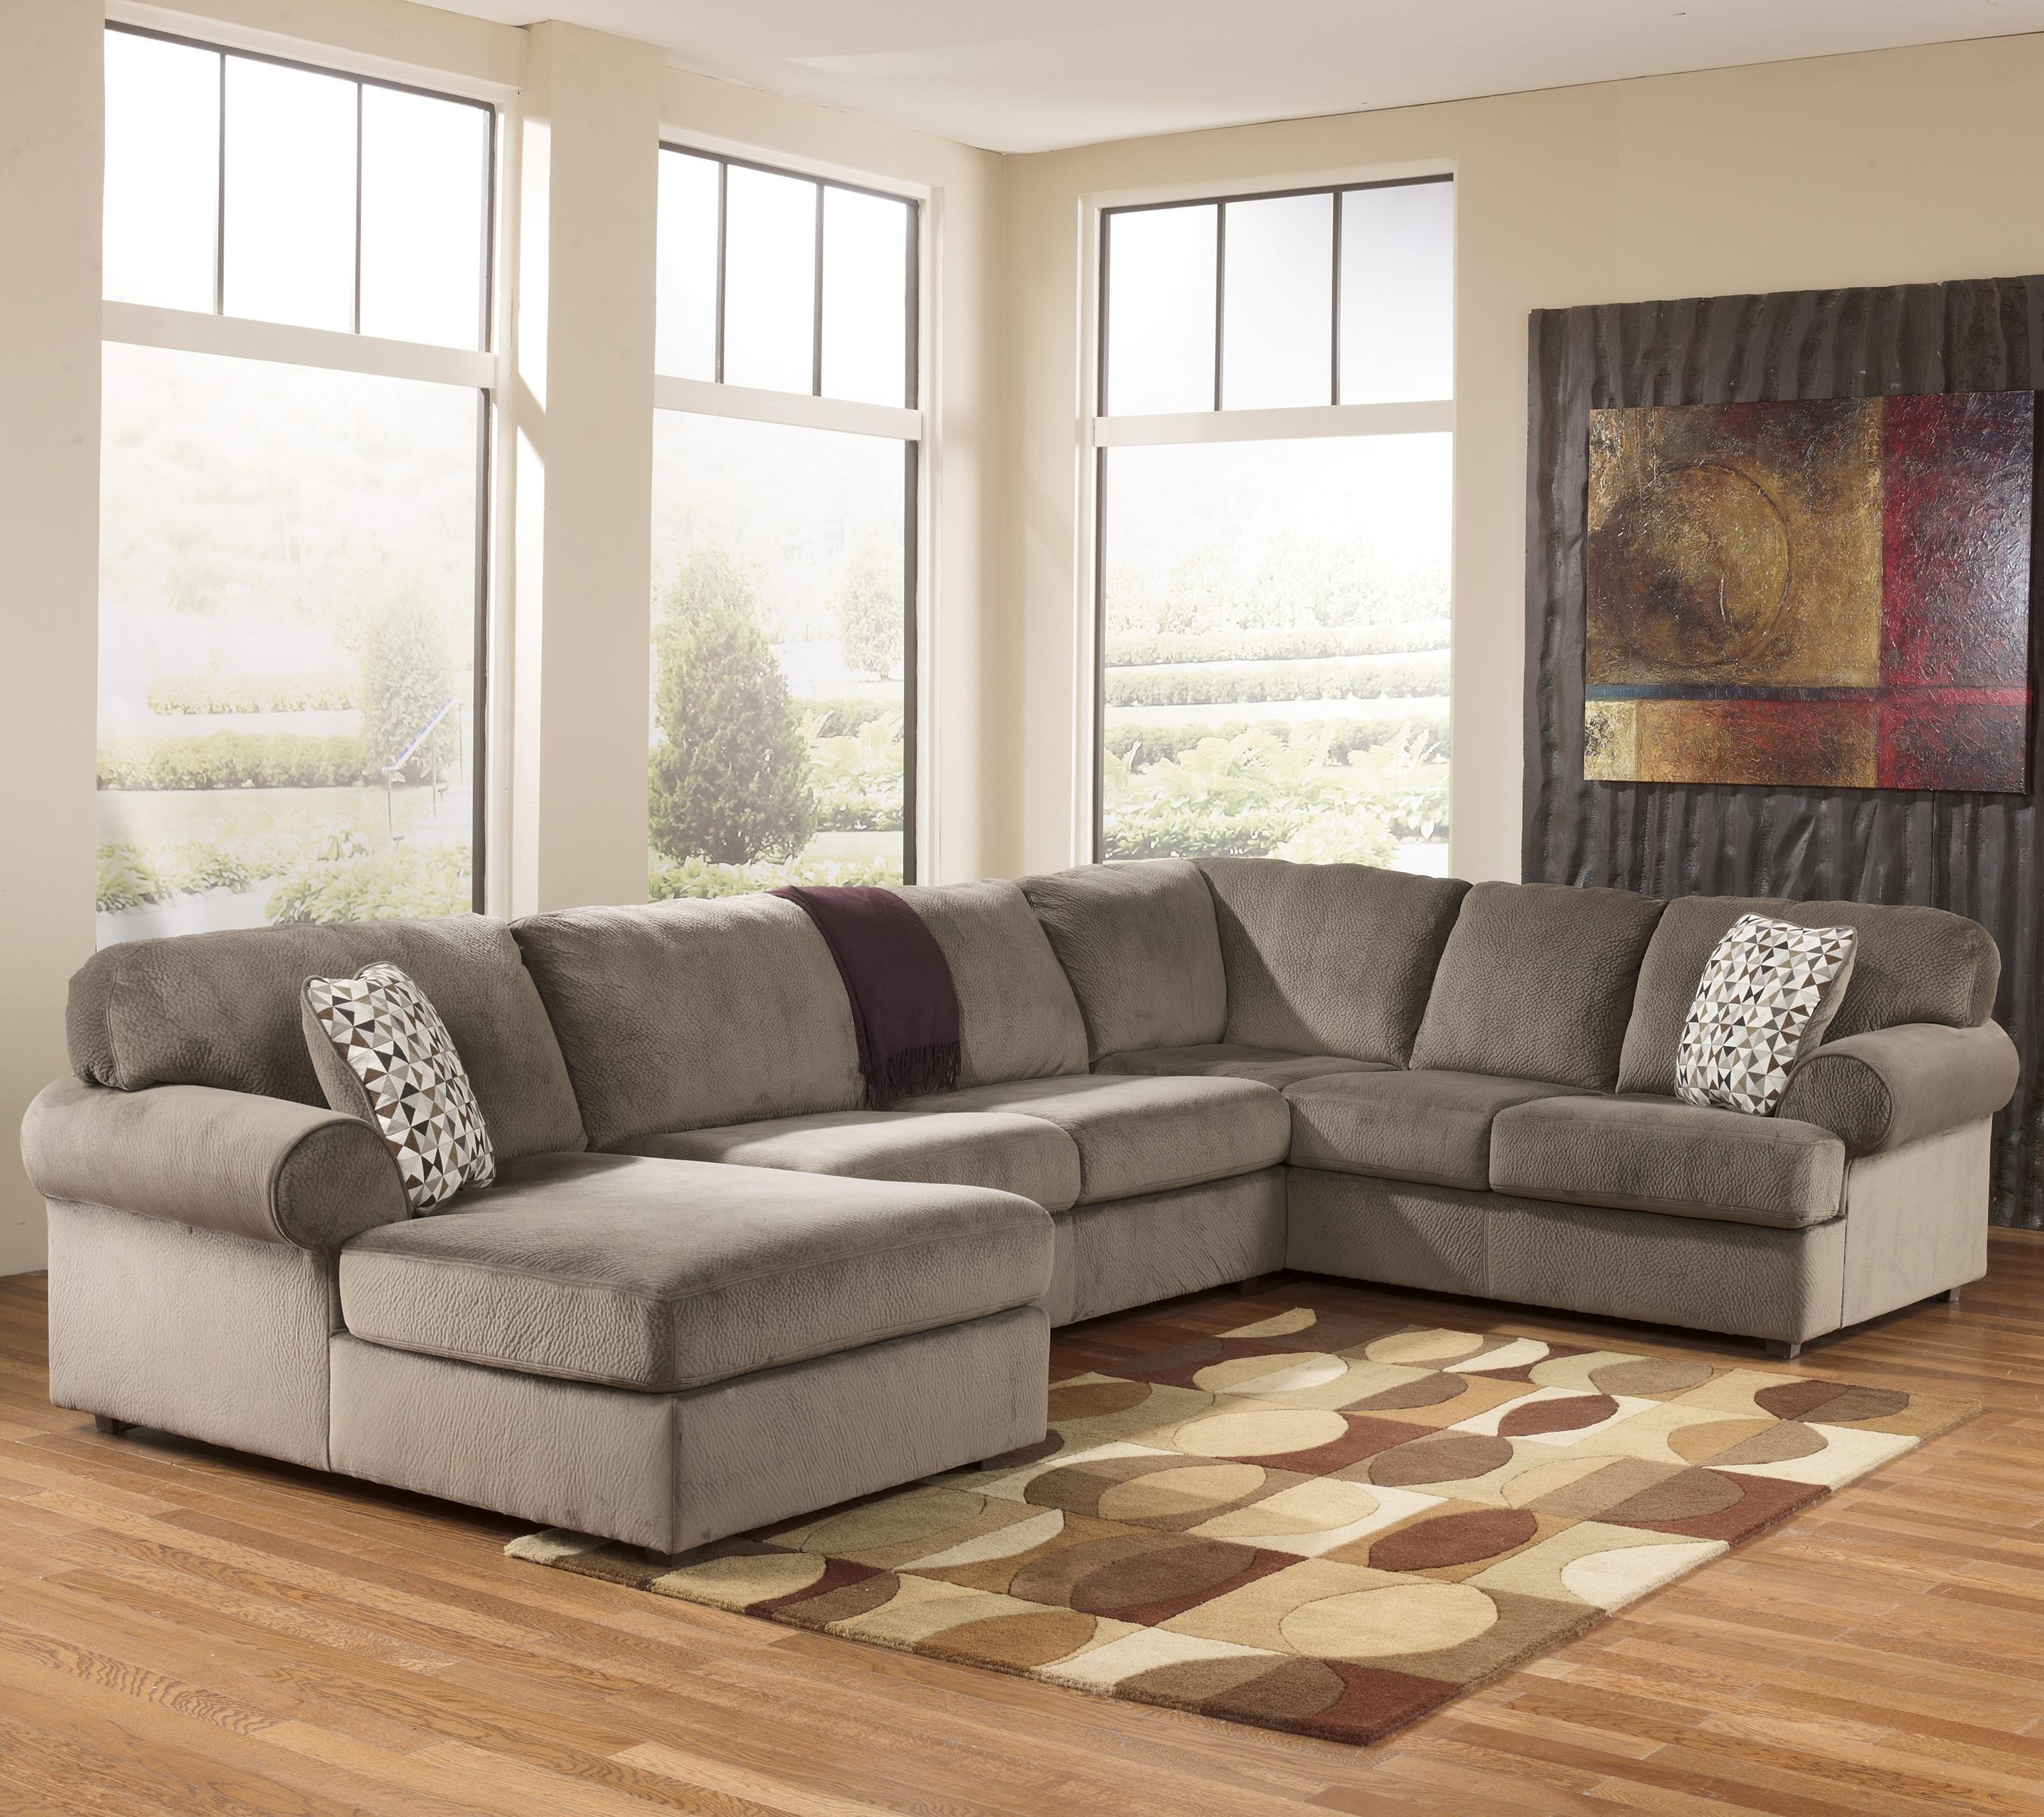 Chair & Sofa: Sectional Sofas At Ashley Furniture | Ashley Intended For Sectional Sofas Ashley Furniture (View 13 of 20)